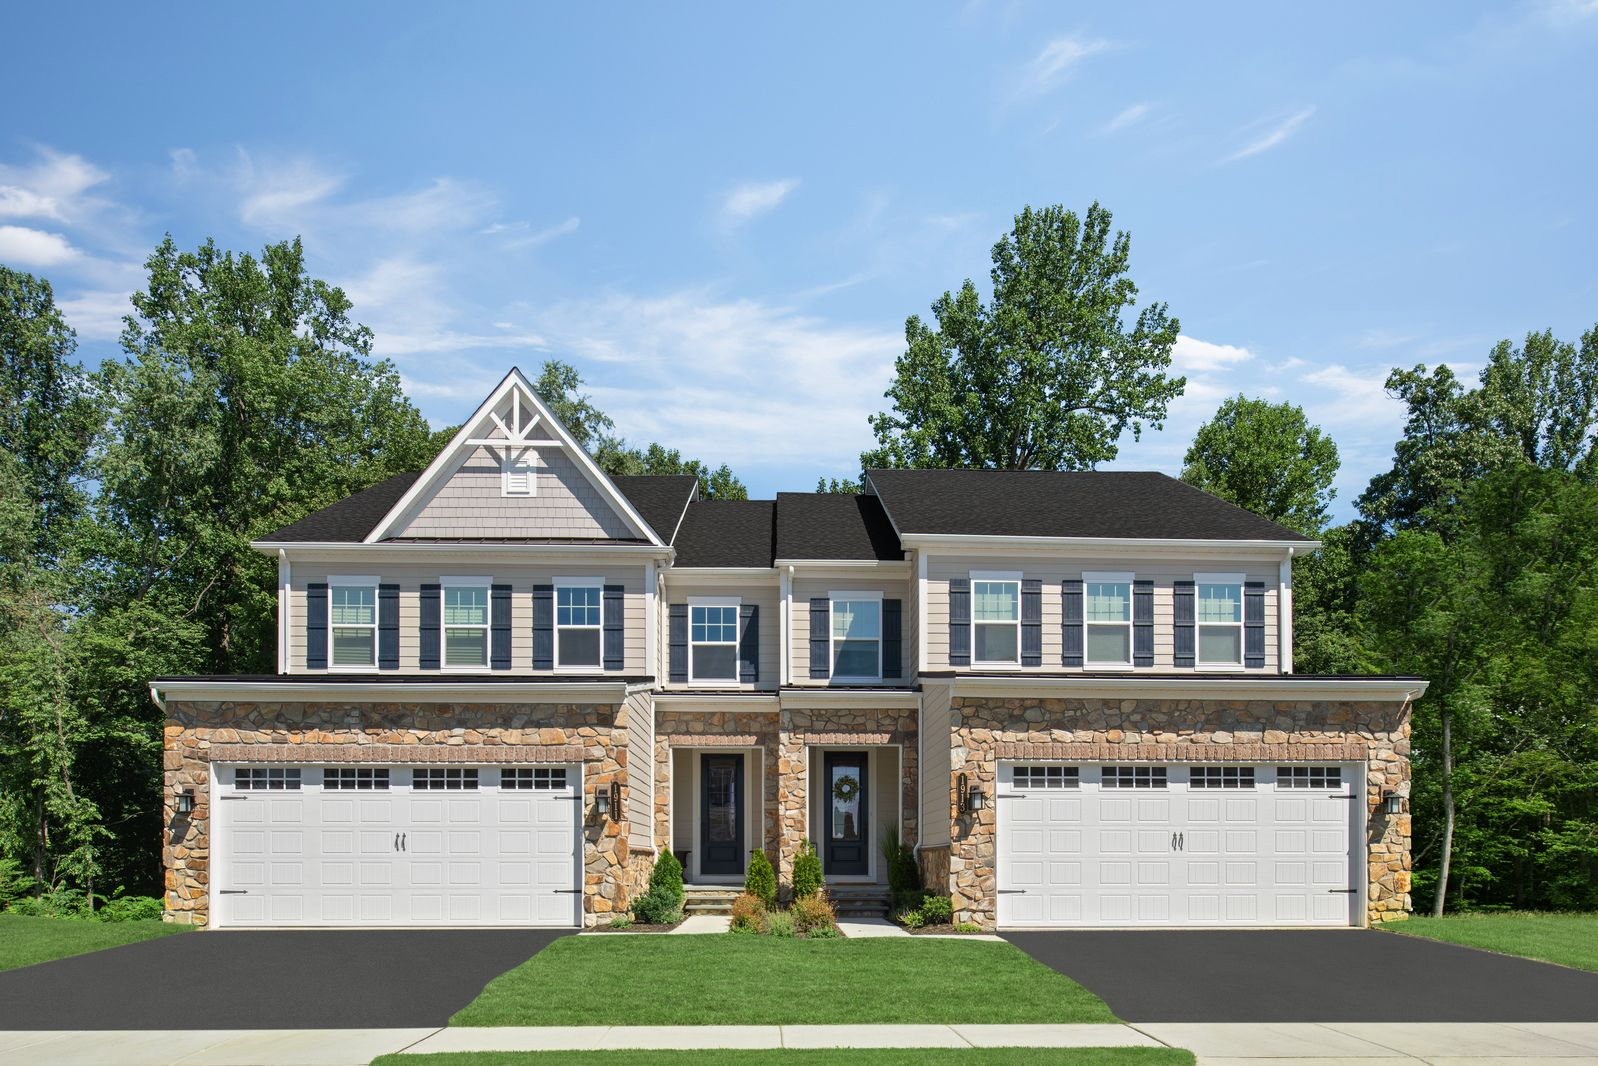 WELCOME TO GREYSTONE:The only new town and twin homes with the luxury features you want, 3 minutes from the West Chester Borough. Schedule your appointment today.